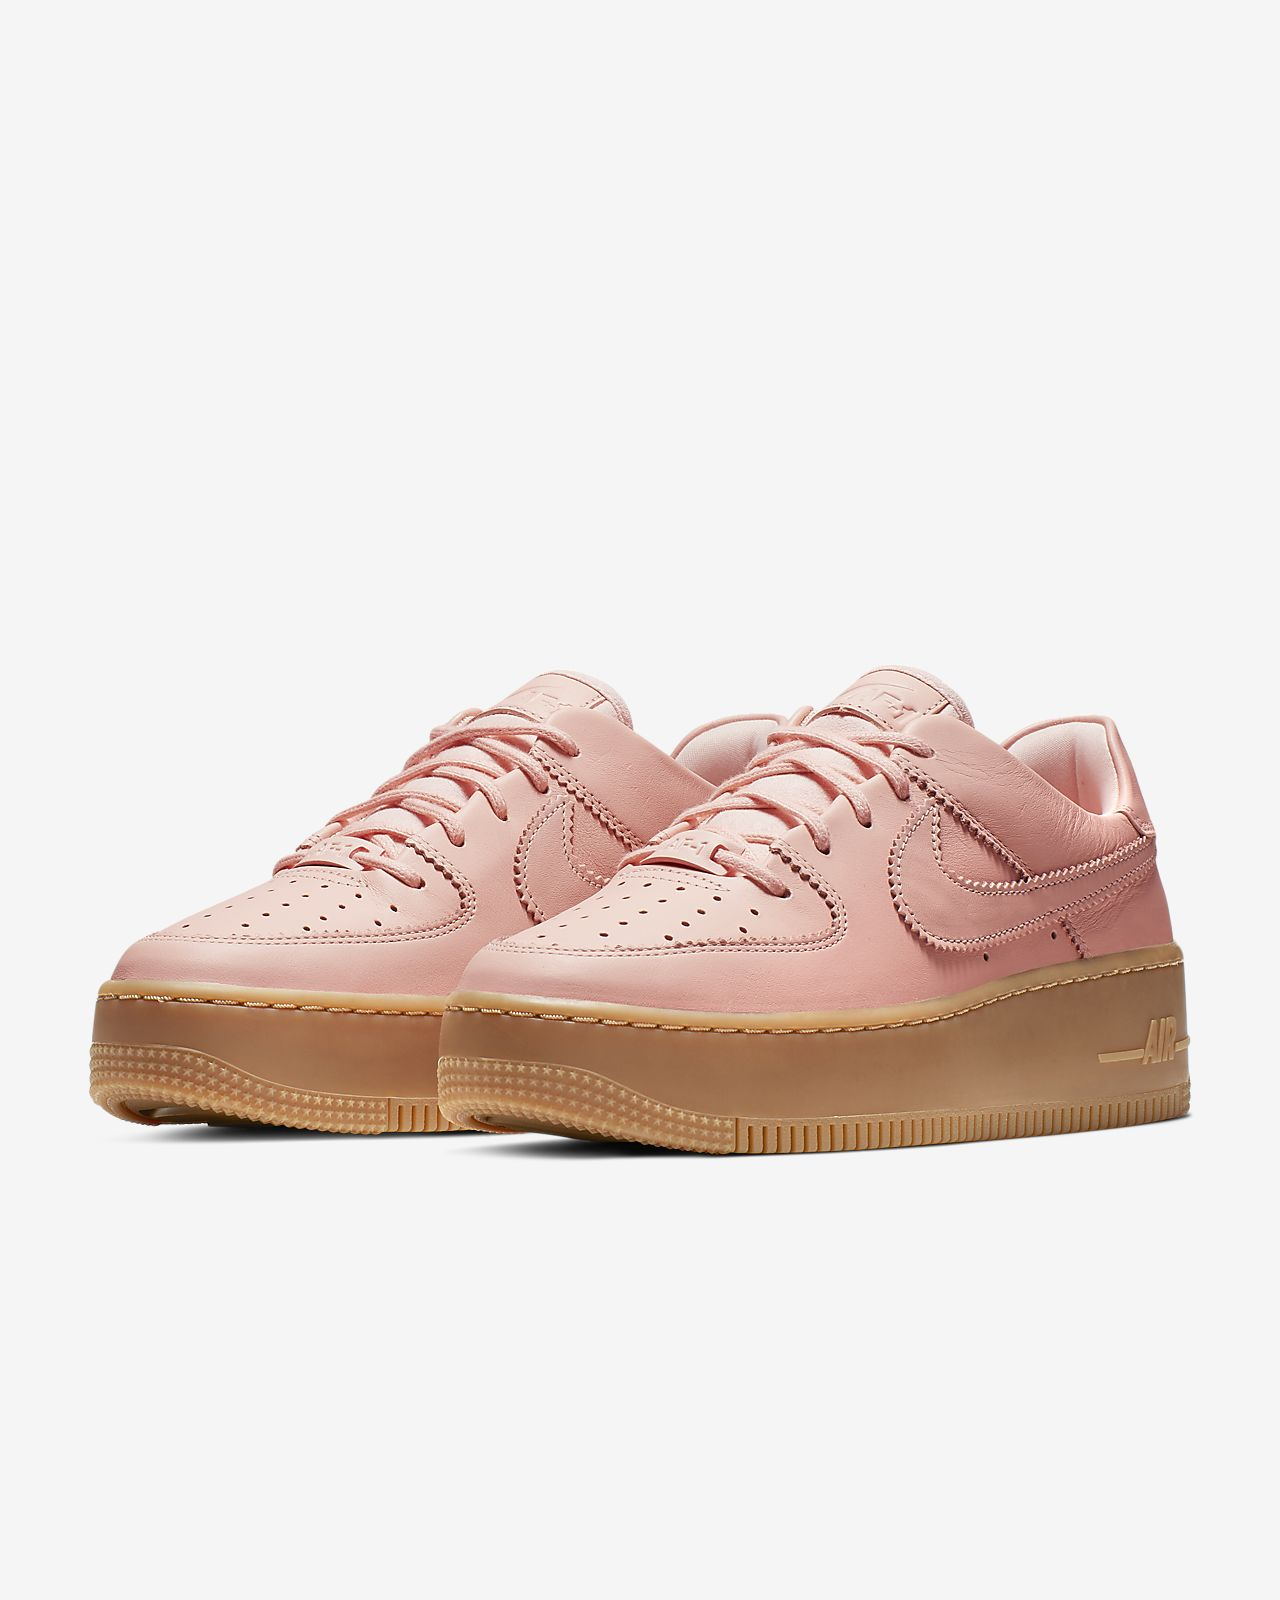 new product 50bab 8bbda ... Nike Air Force 1 Sage Low LX Women s Shoe